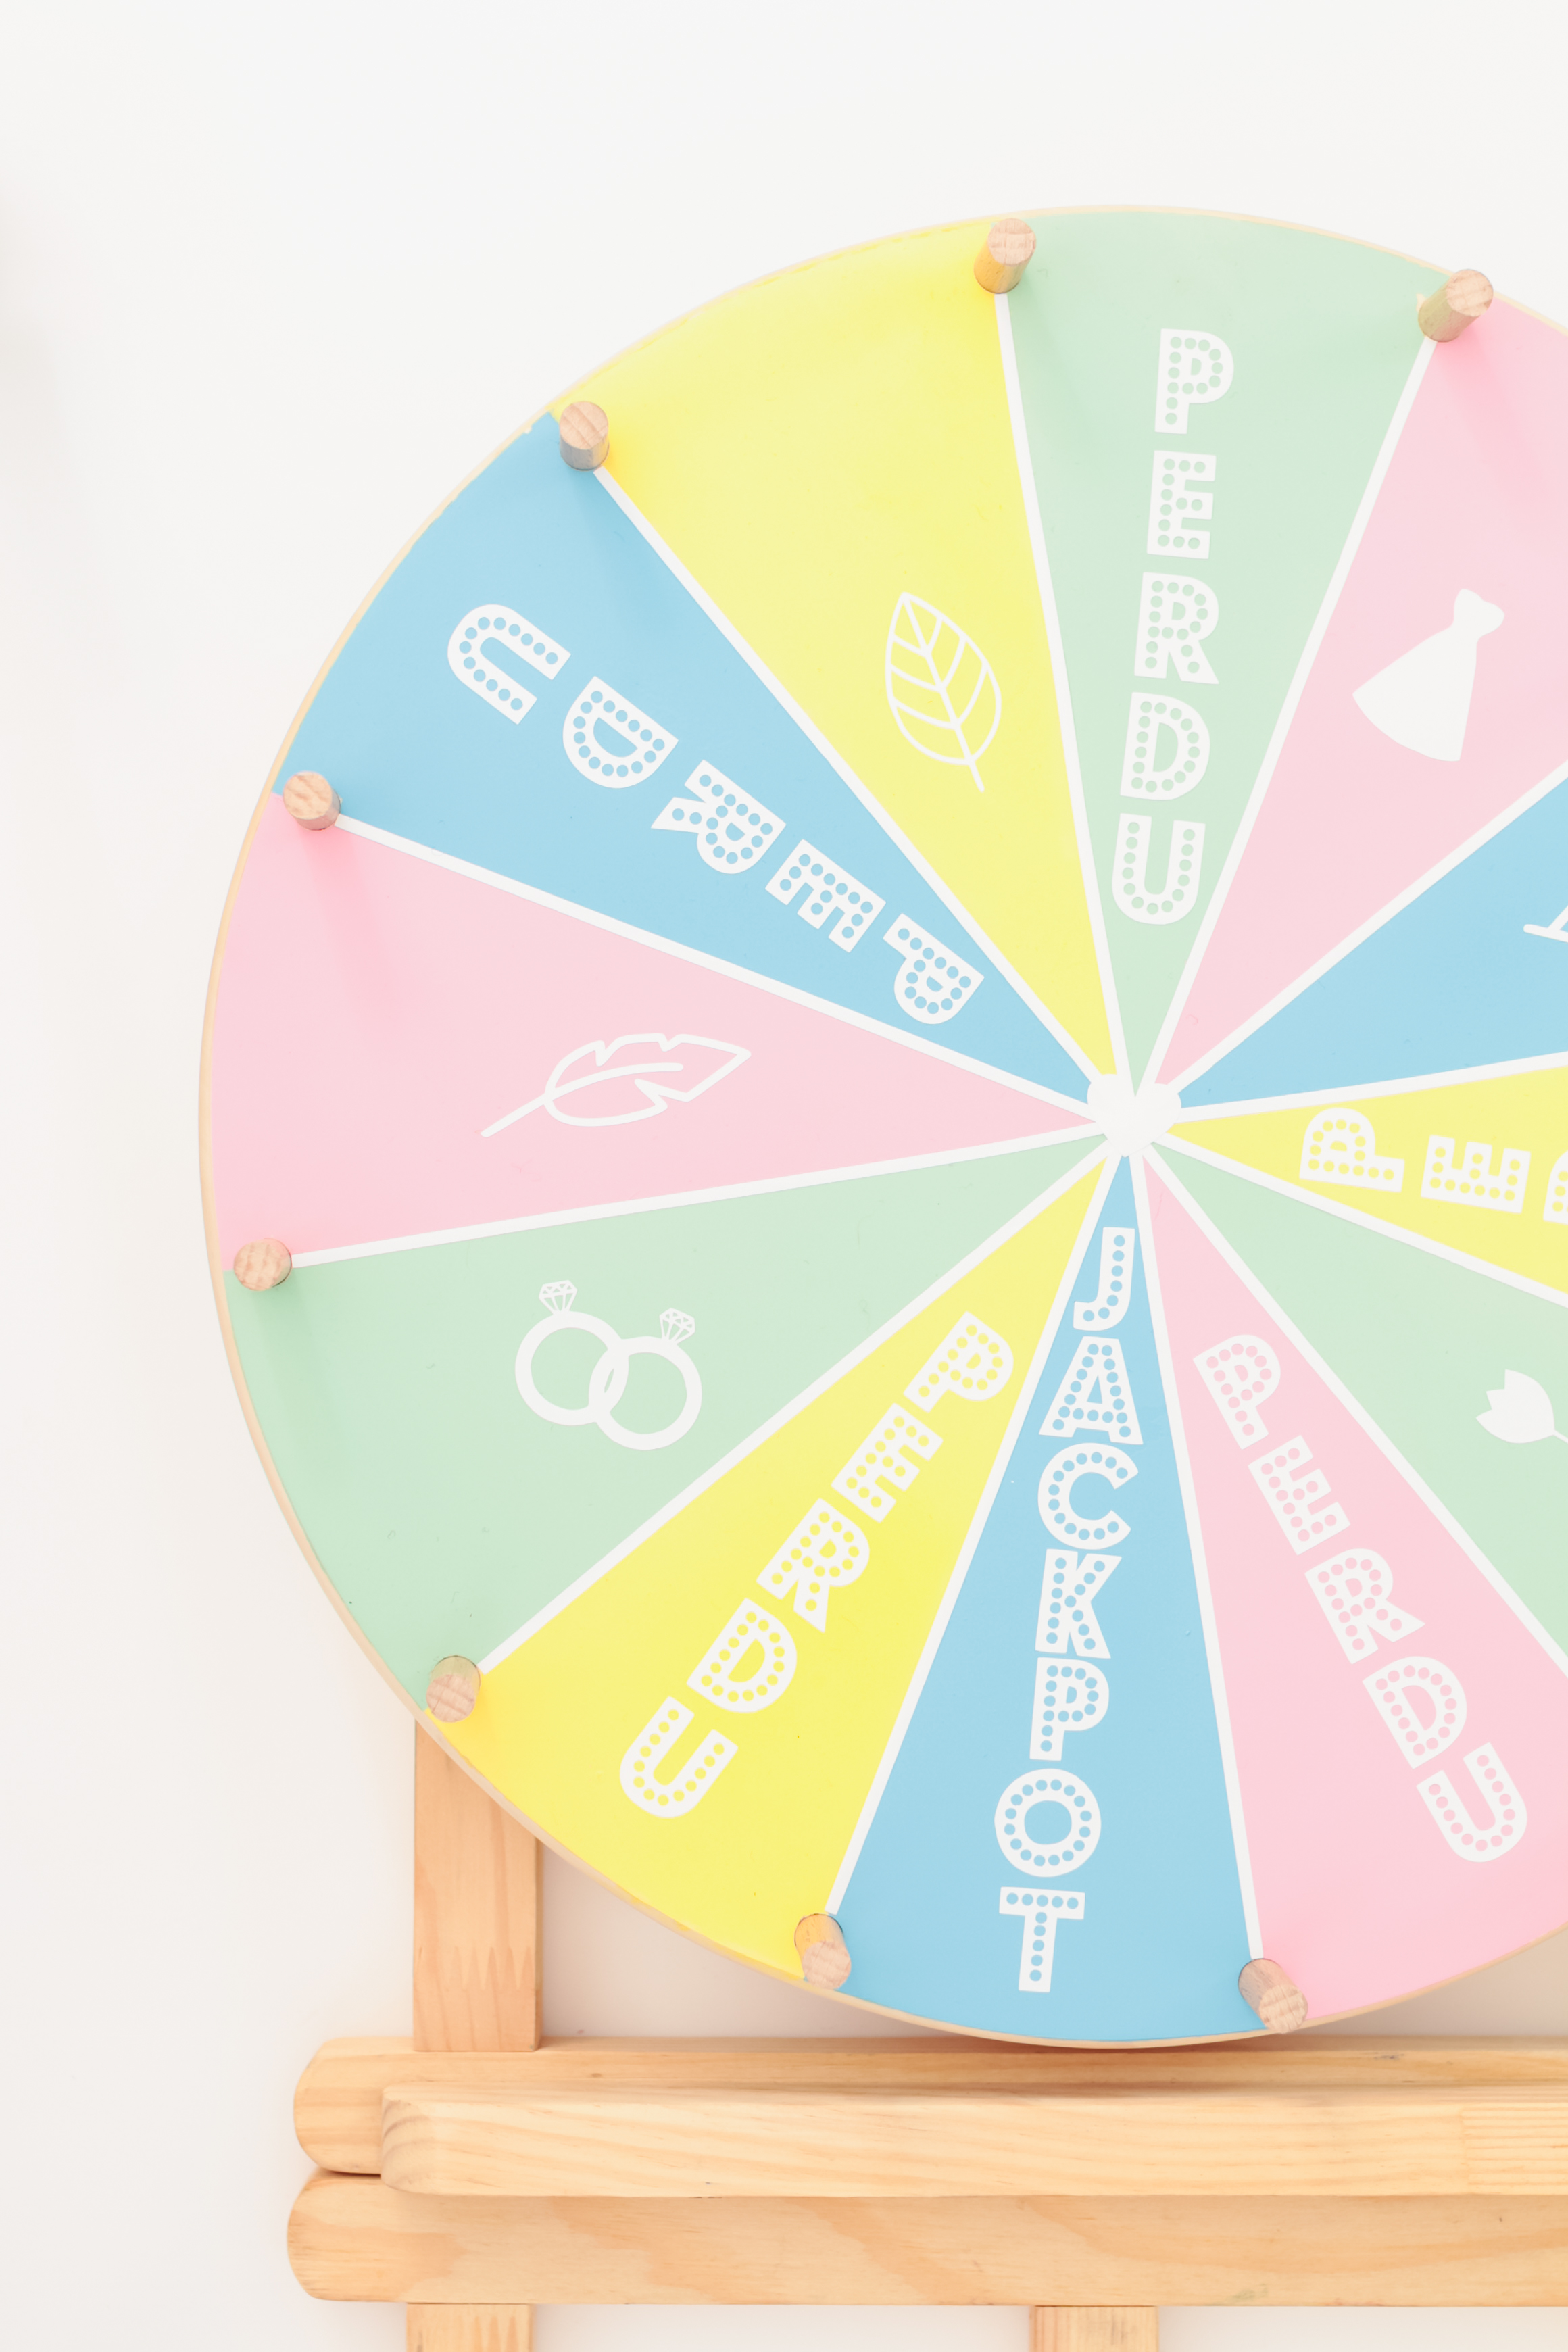 diy-roue-de-la-fortune-wheel-fortune-i-sp4nkblog-21